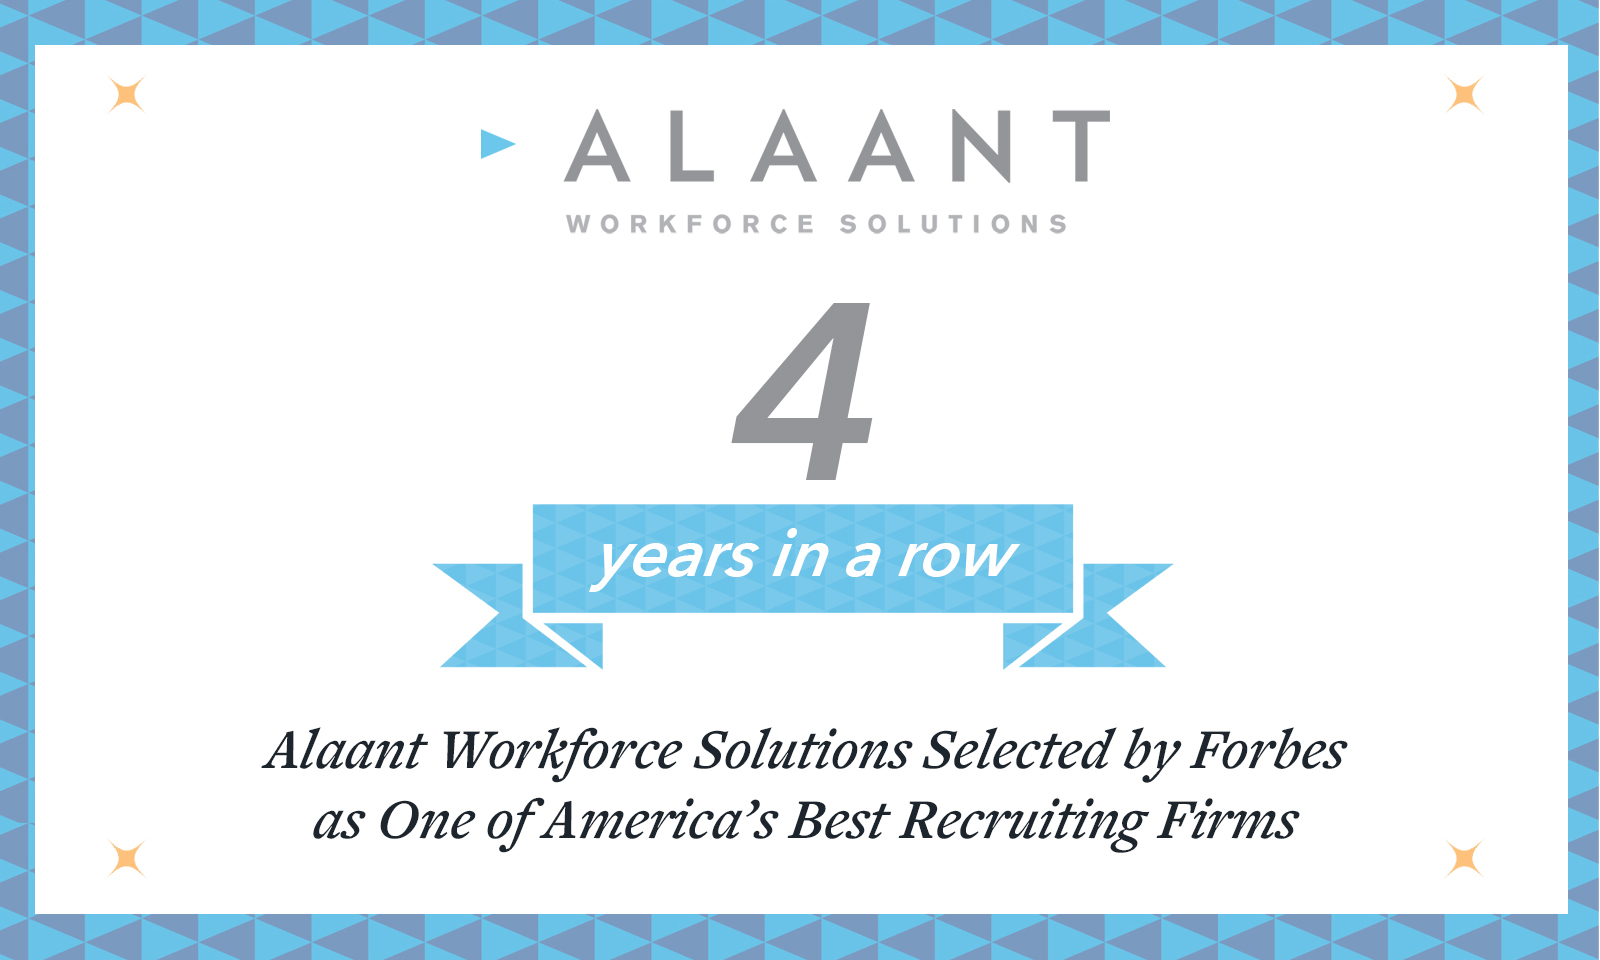 Alaant Workforce Solutions Selected by Forbes as One of America's Best Recruiting Firms